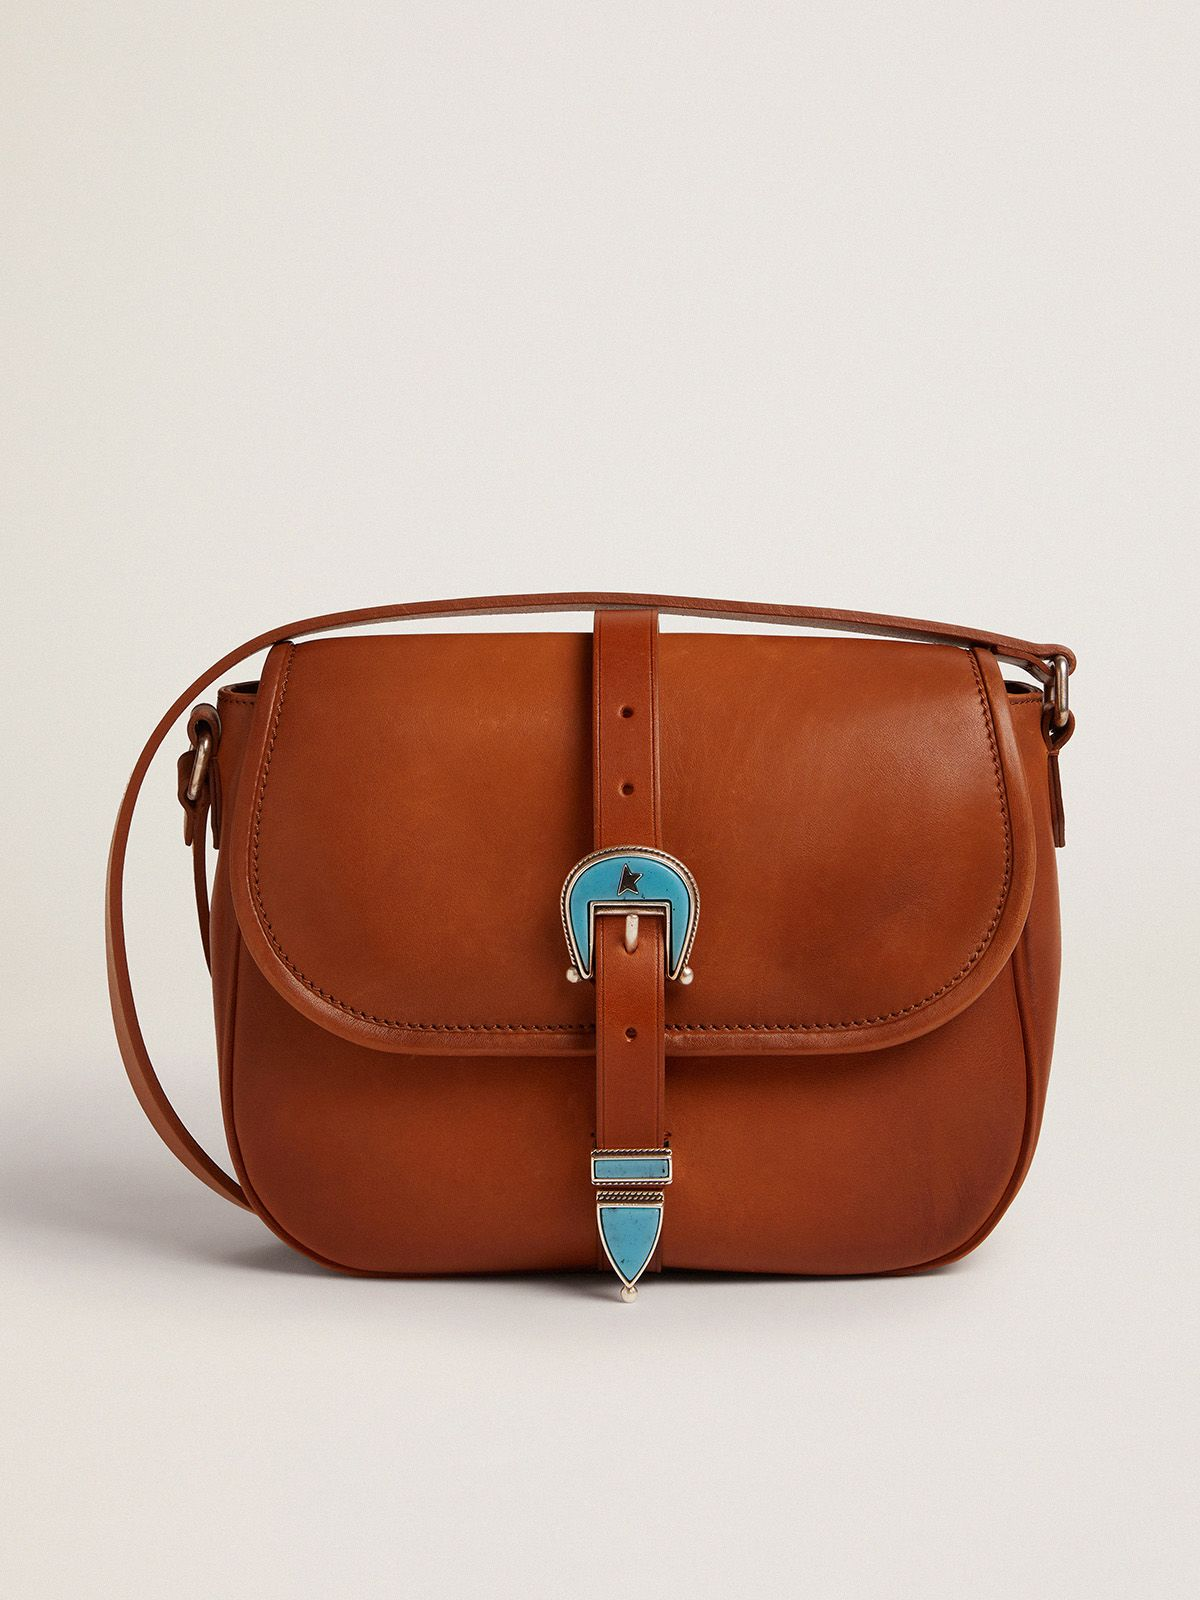 Medium Rodeo Bag in pale tan leather with blue buckle